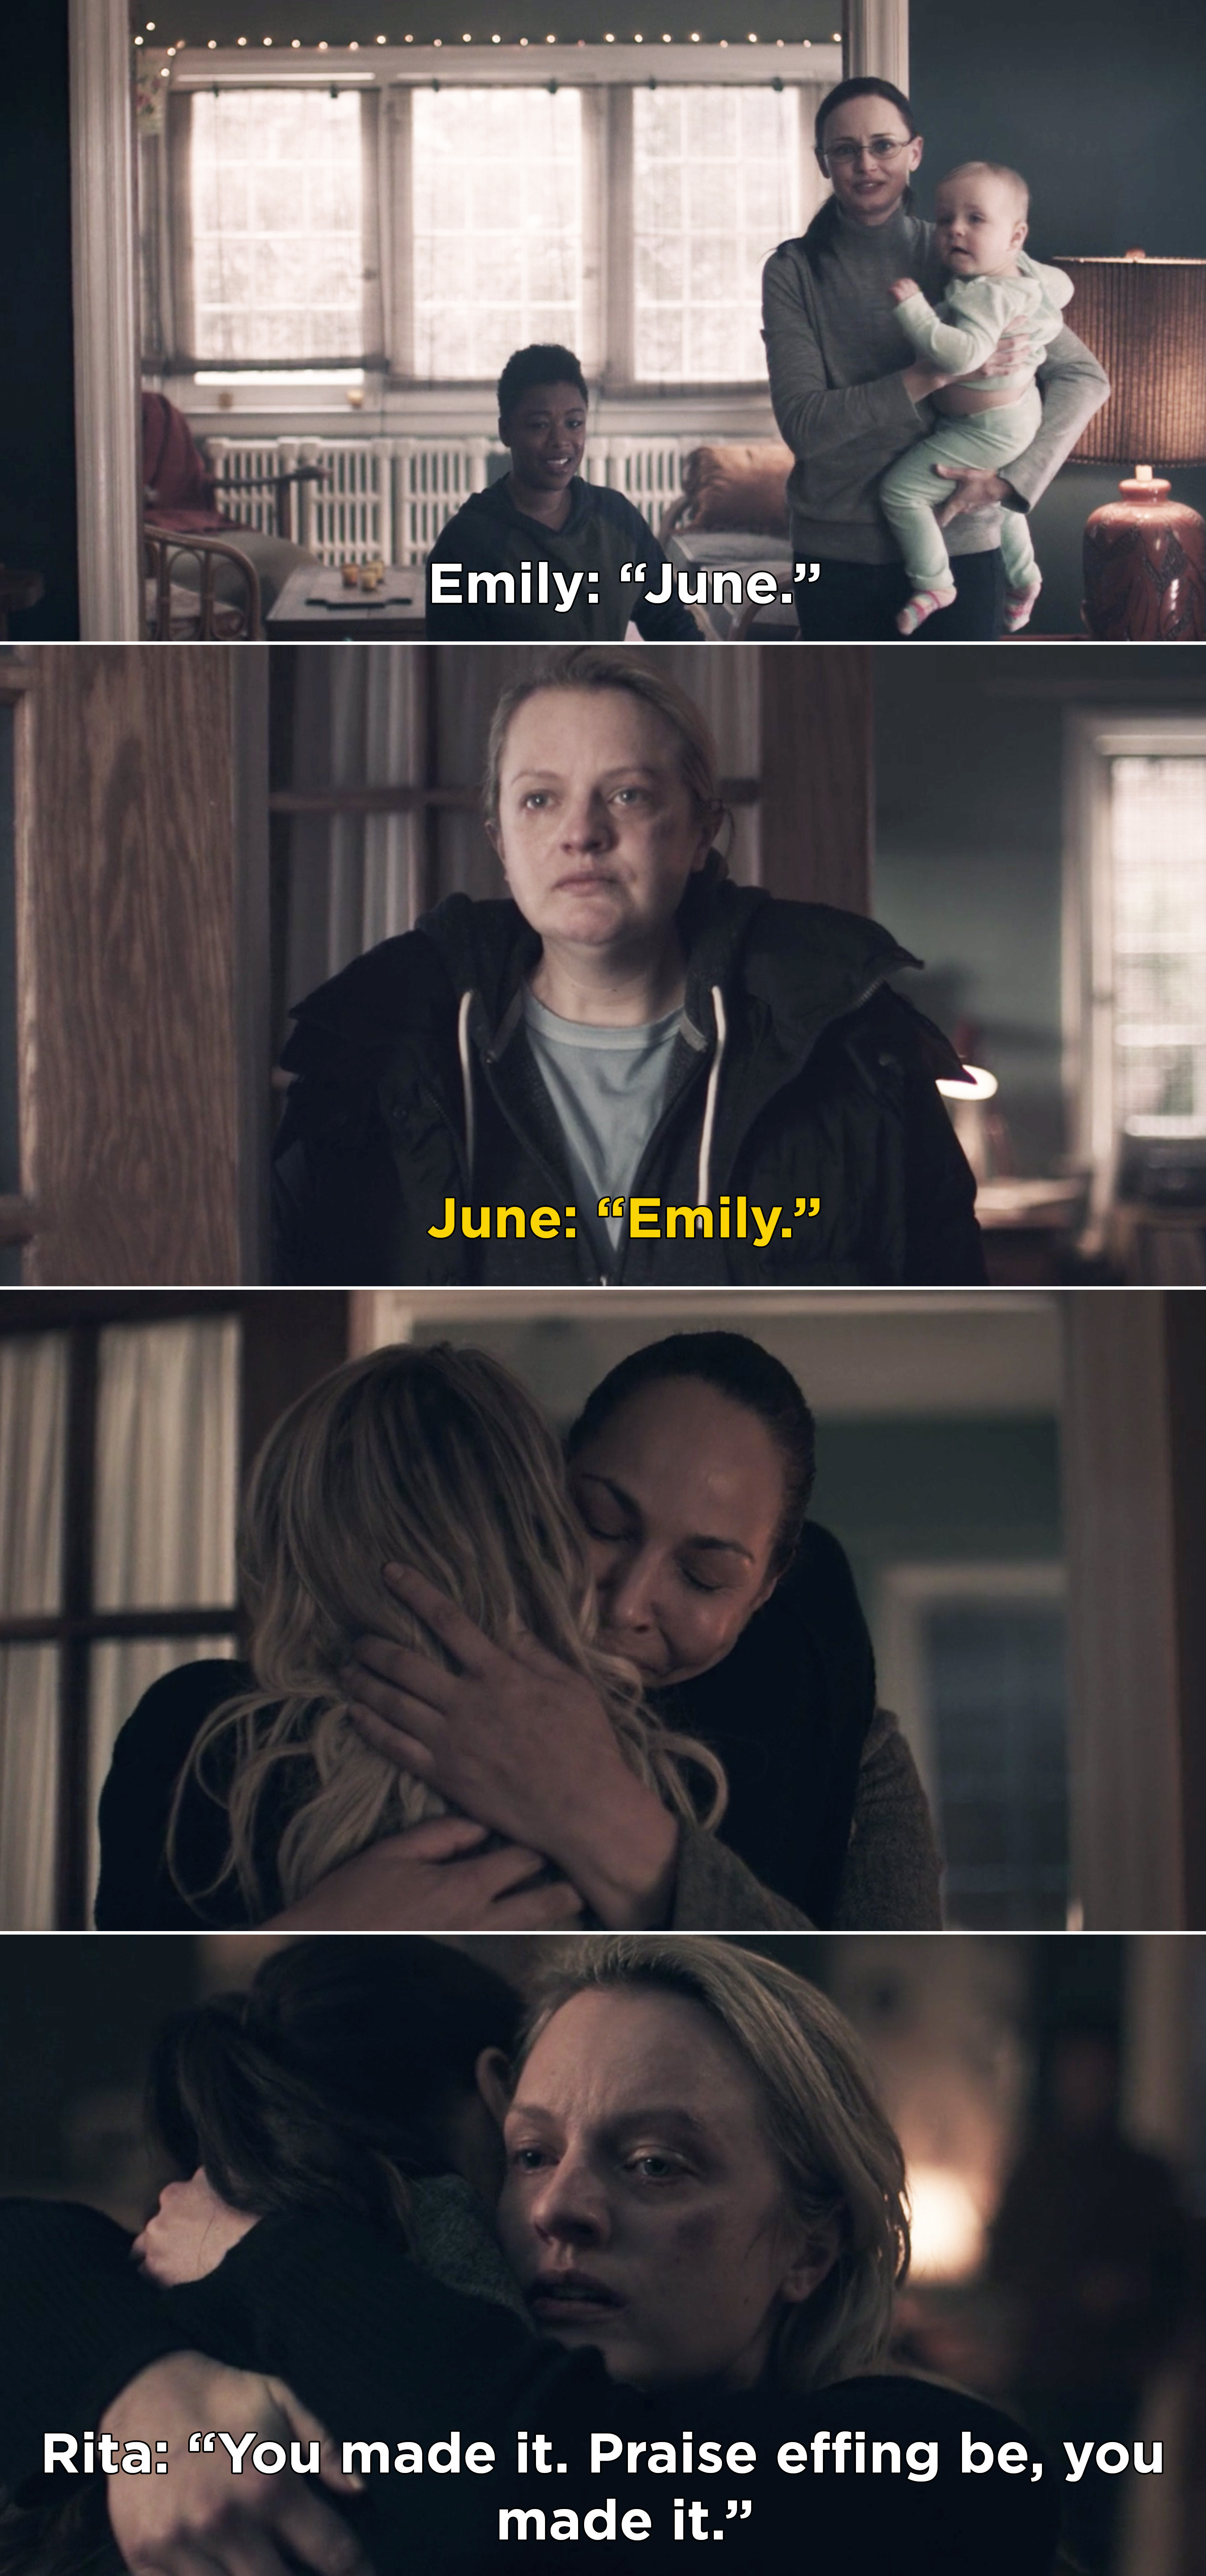 """June seeing Emily, and then June hugging Rita, and Rita saying, """"You made it. Praise effing be, you made it"""""""